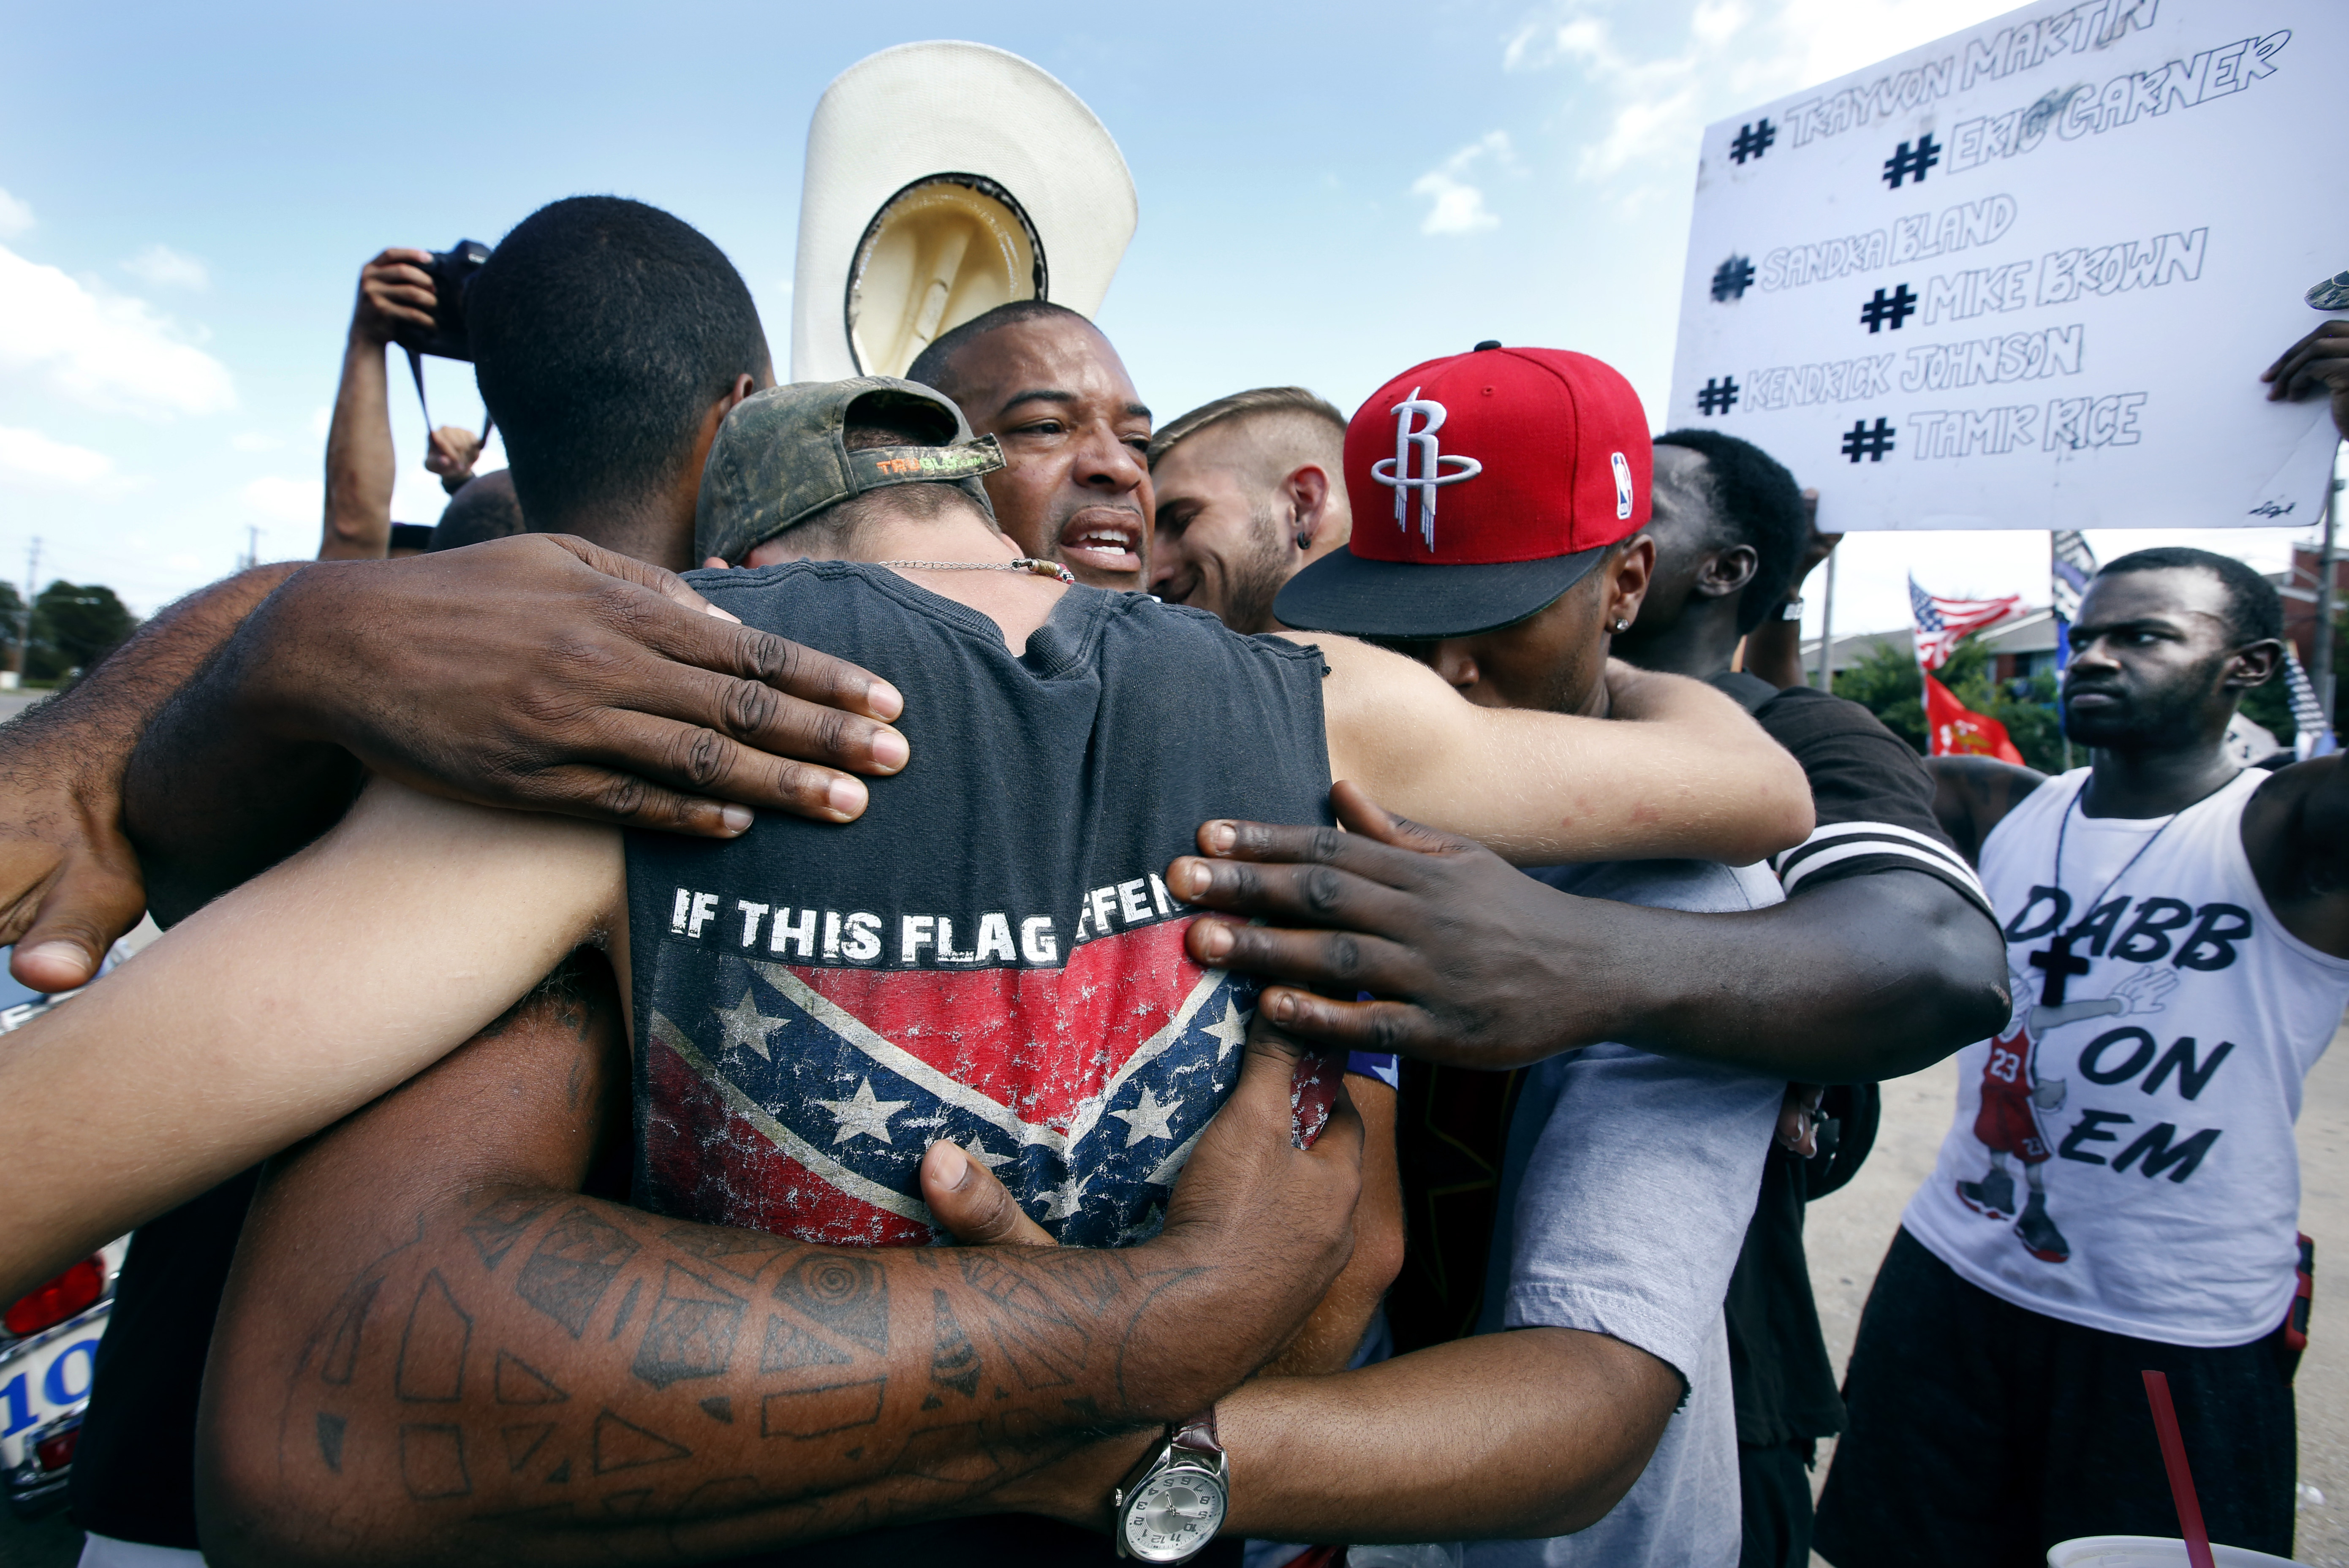 All Lives Matter protesters come together for a group hug with join Black Lives Matter activists in Dallas at Park Ln & Fair Oaks Ave. July 10th.